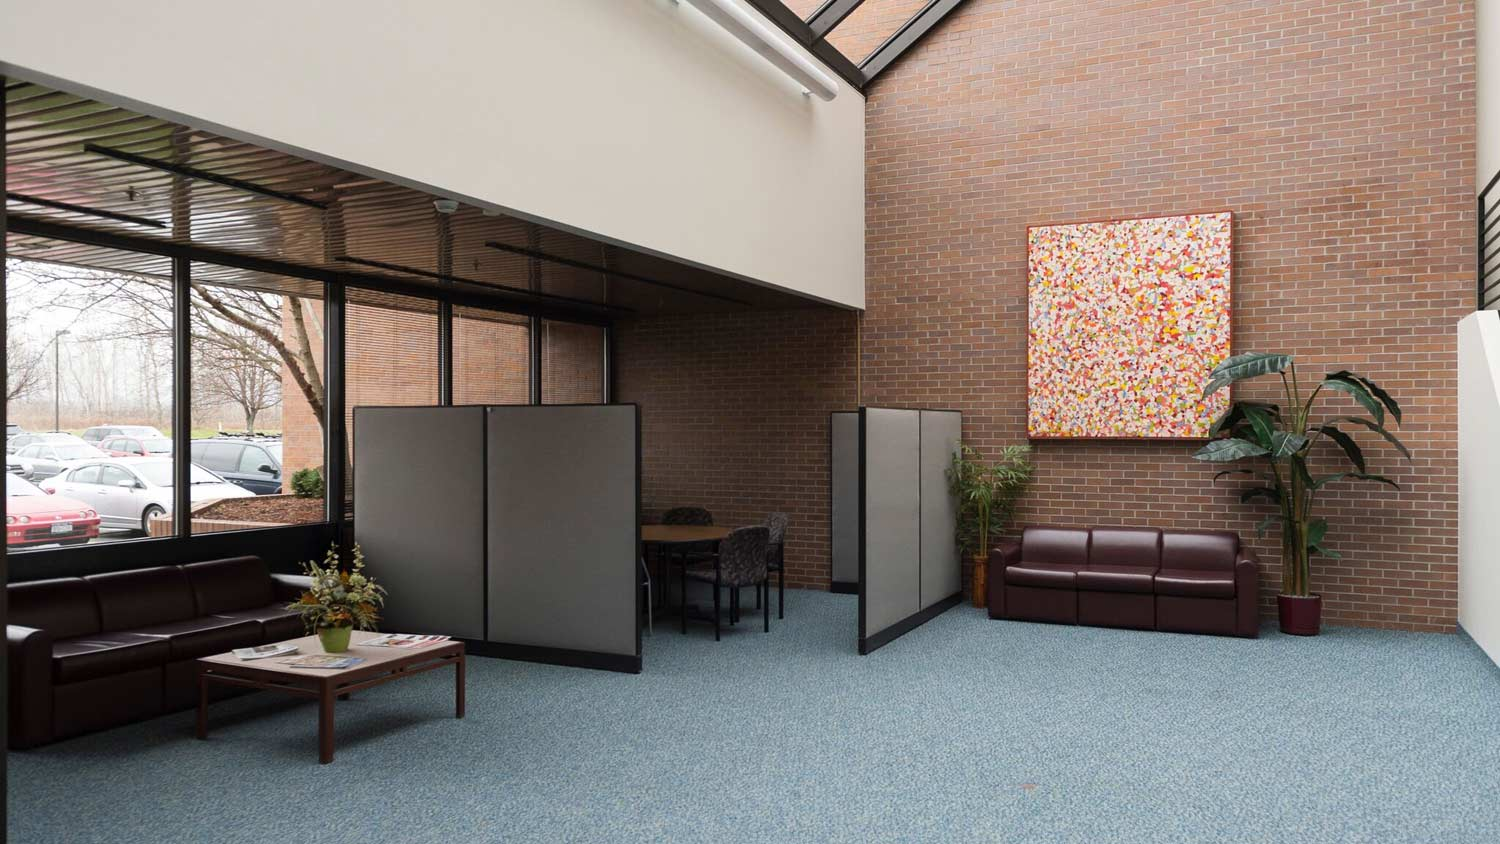 Carpeted waiting room